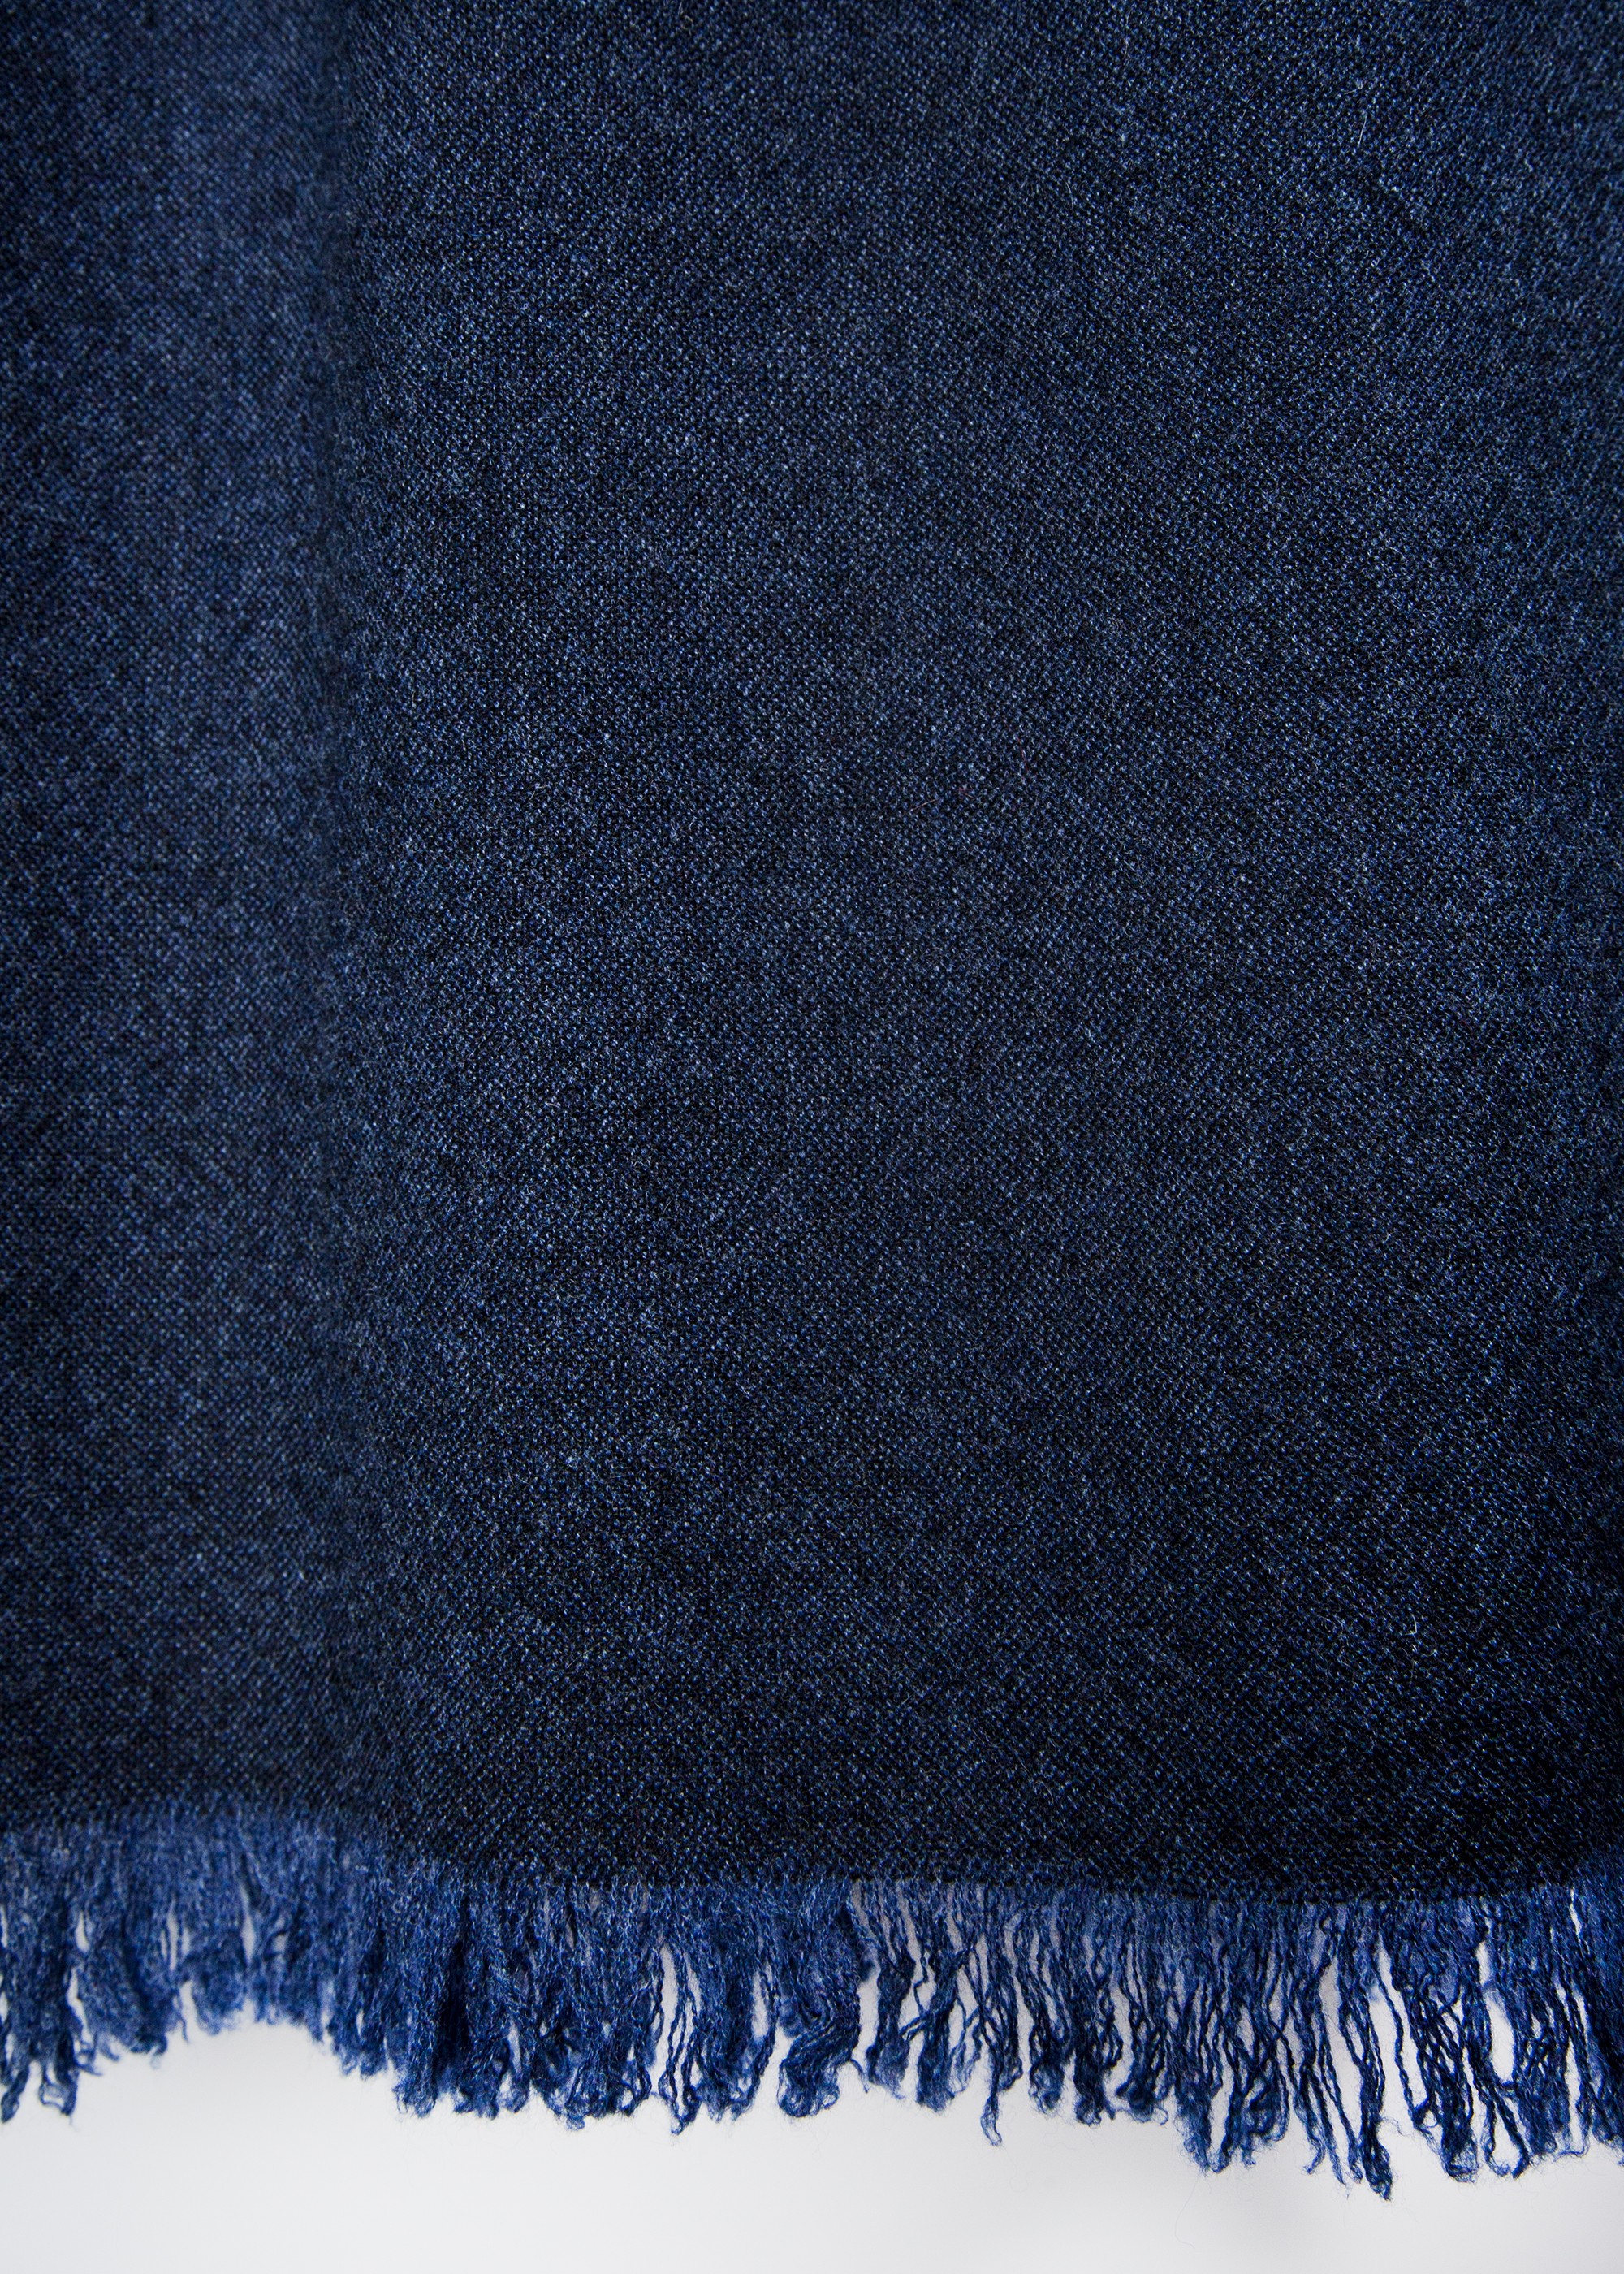 scarf-begg-and-co-blue-ombre-4.jpg